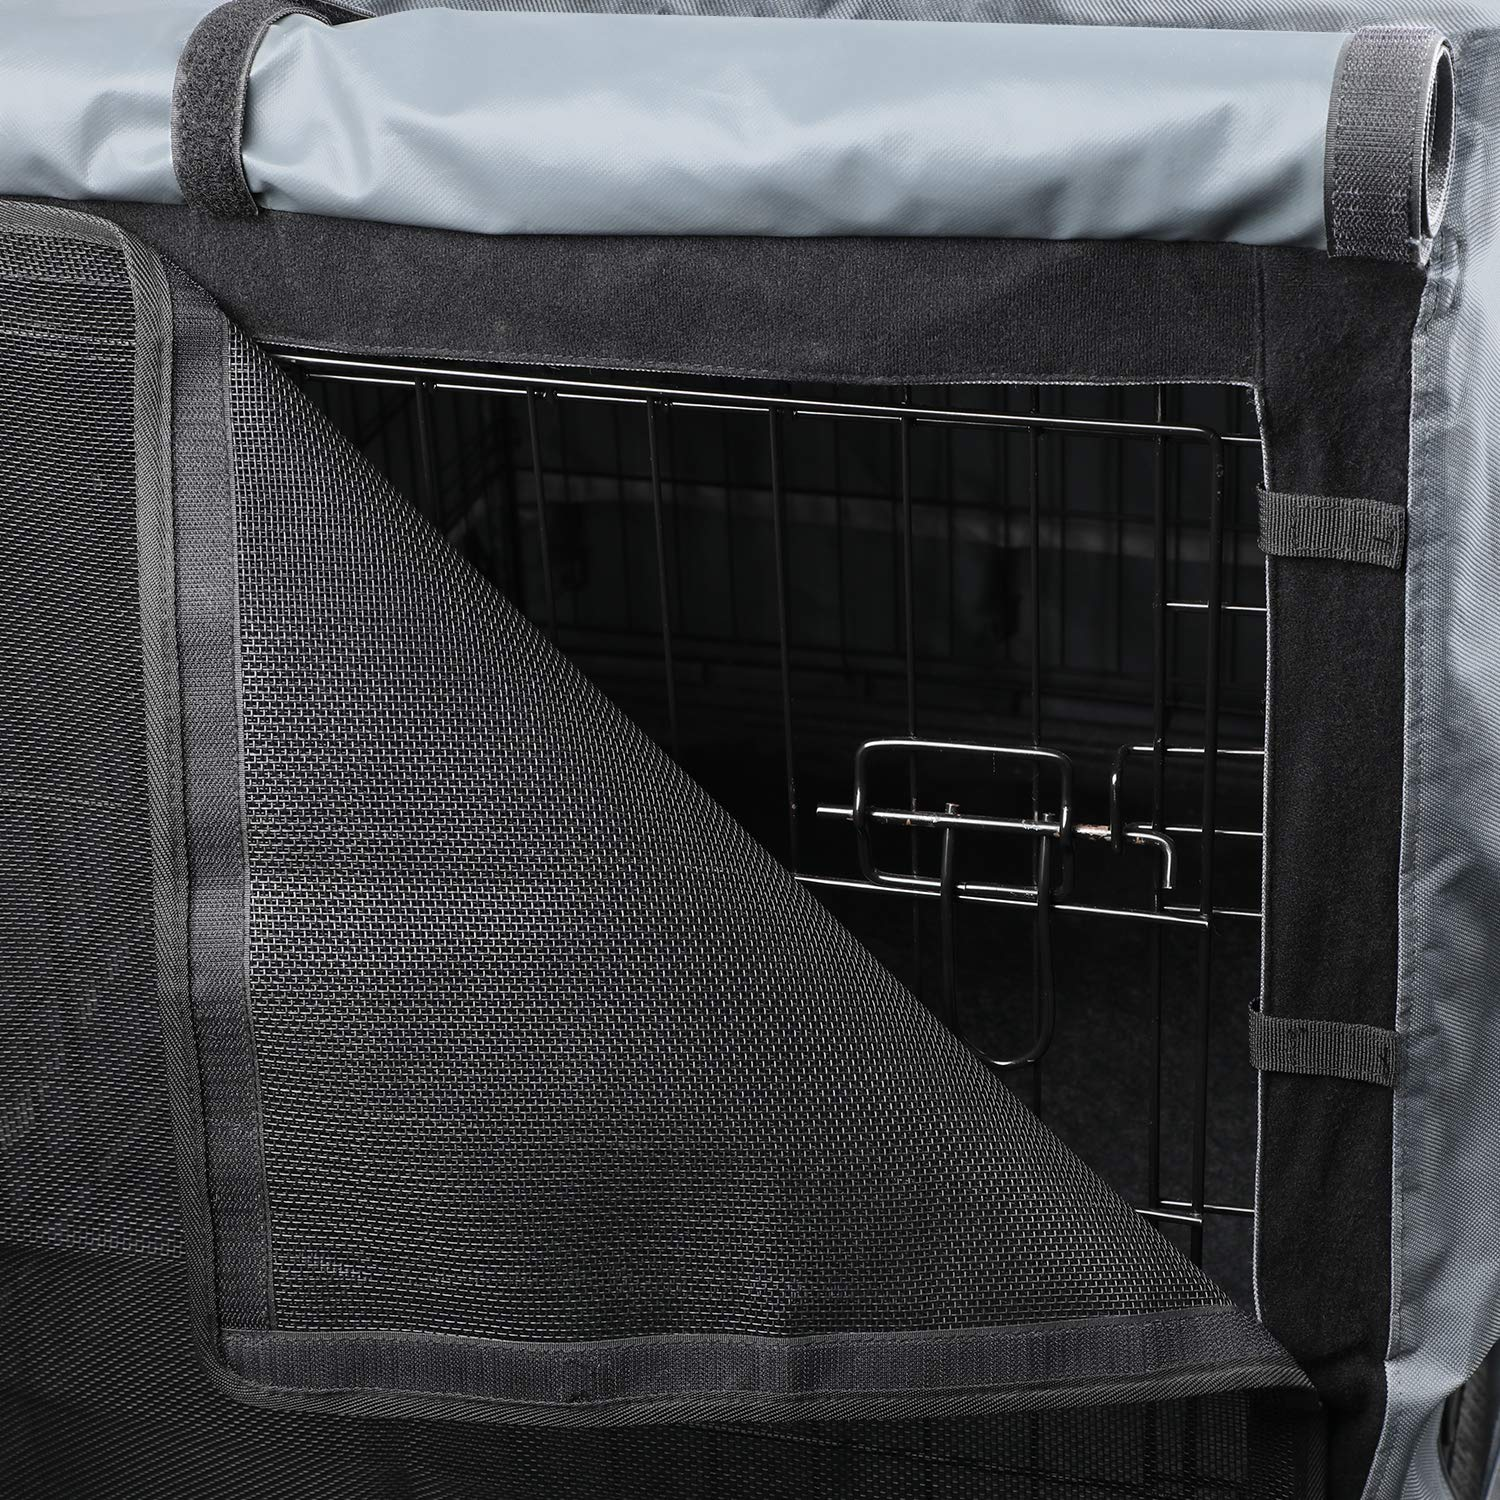 yotache Dog Crate Cover for 42'' Double Door Wire Dog Cage, High Density 600D Oxford Cloth Indoor/Outdoor Durable Waterproof & Windproof Pet Kennel Covers, Gray by yotache (Image #5)